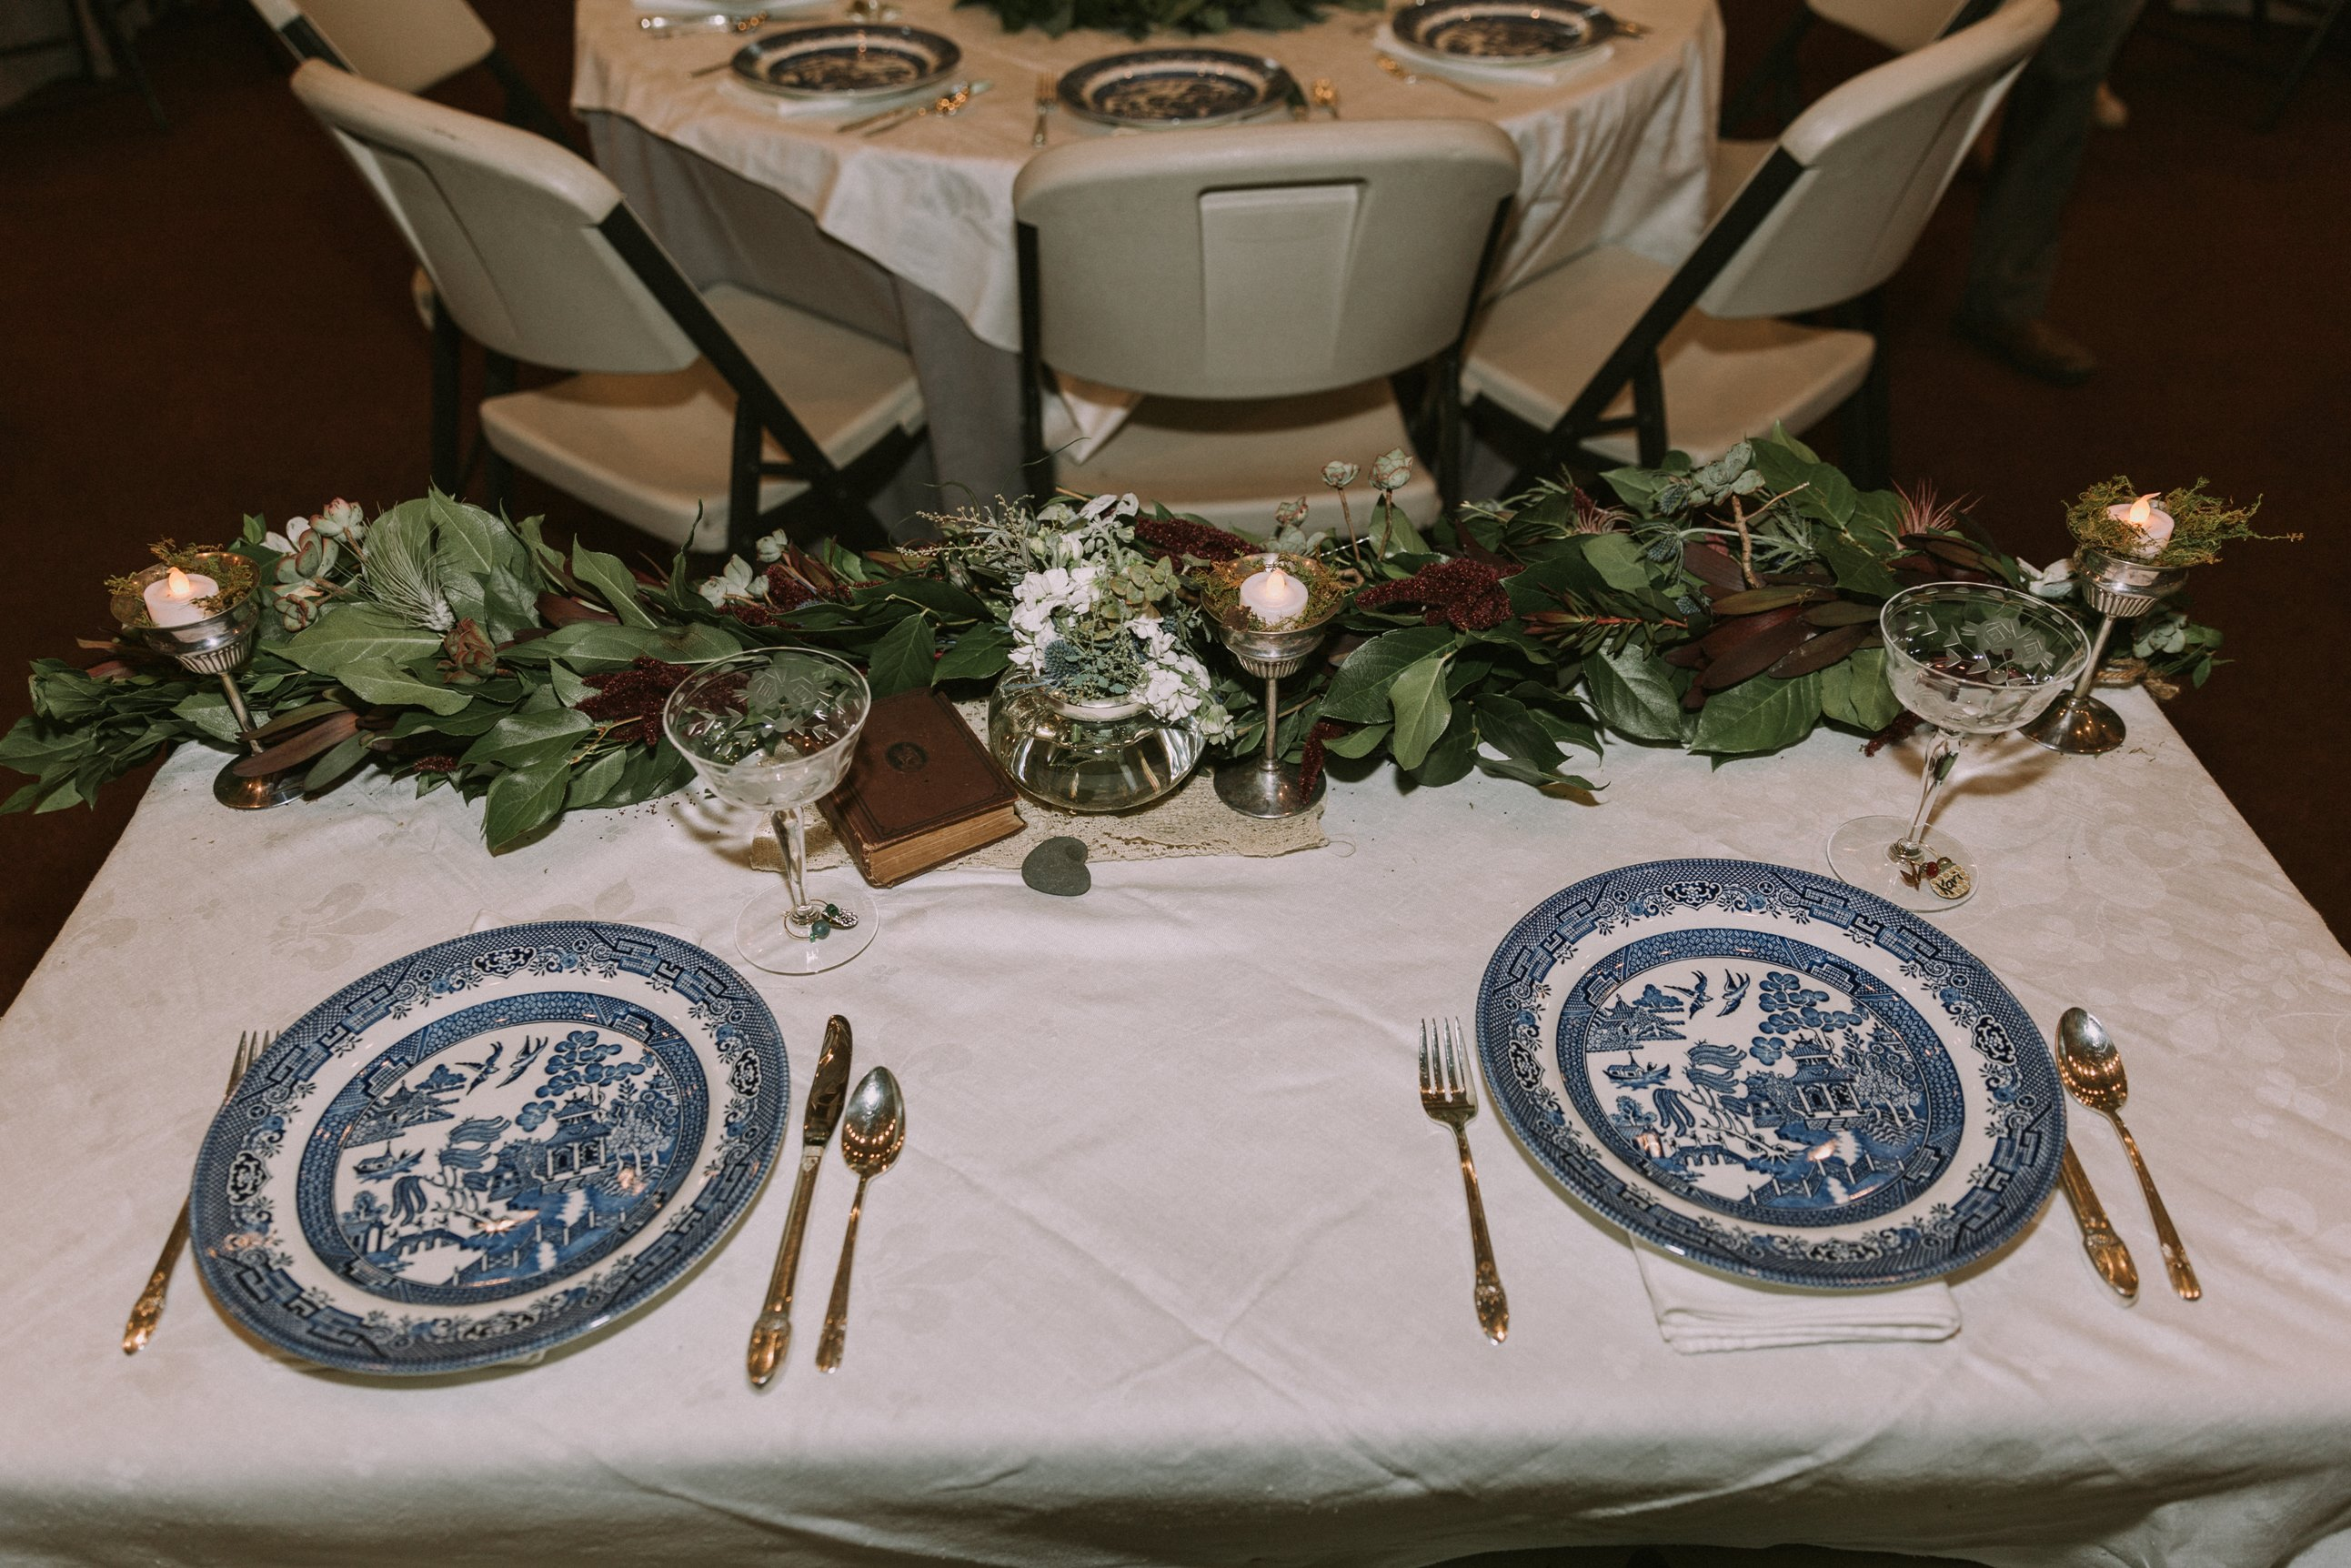 Vintage Wedding Dinner Set Up